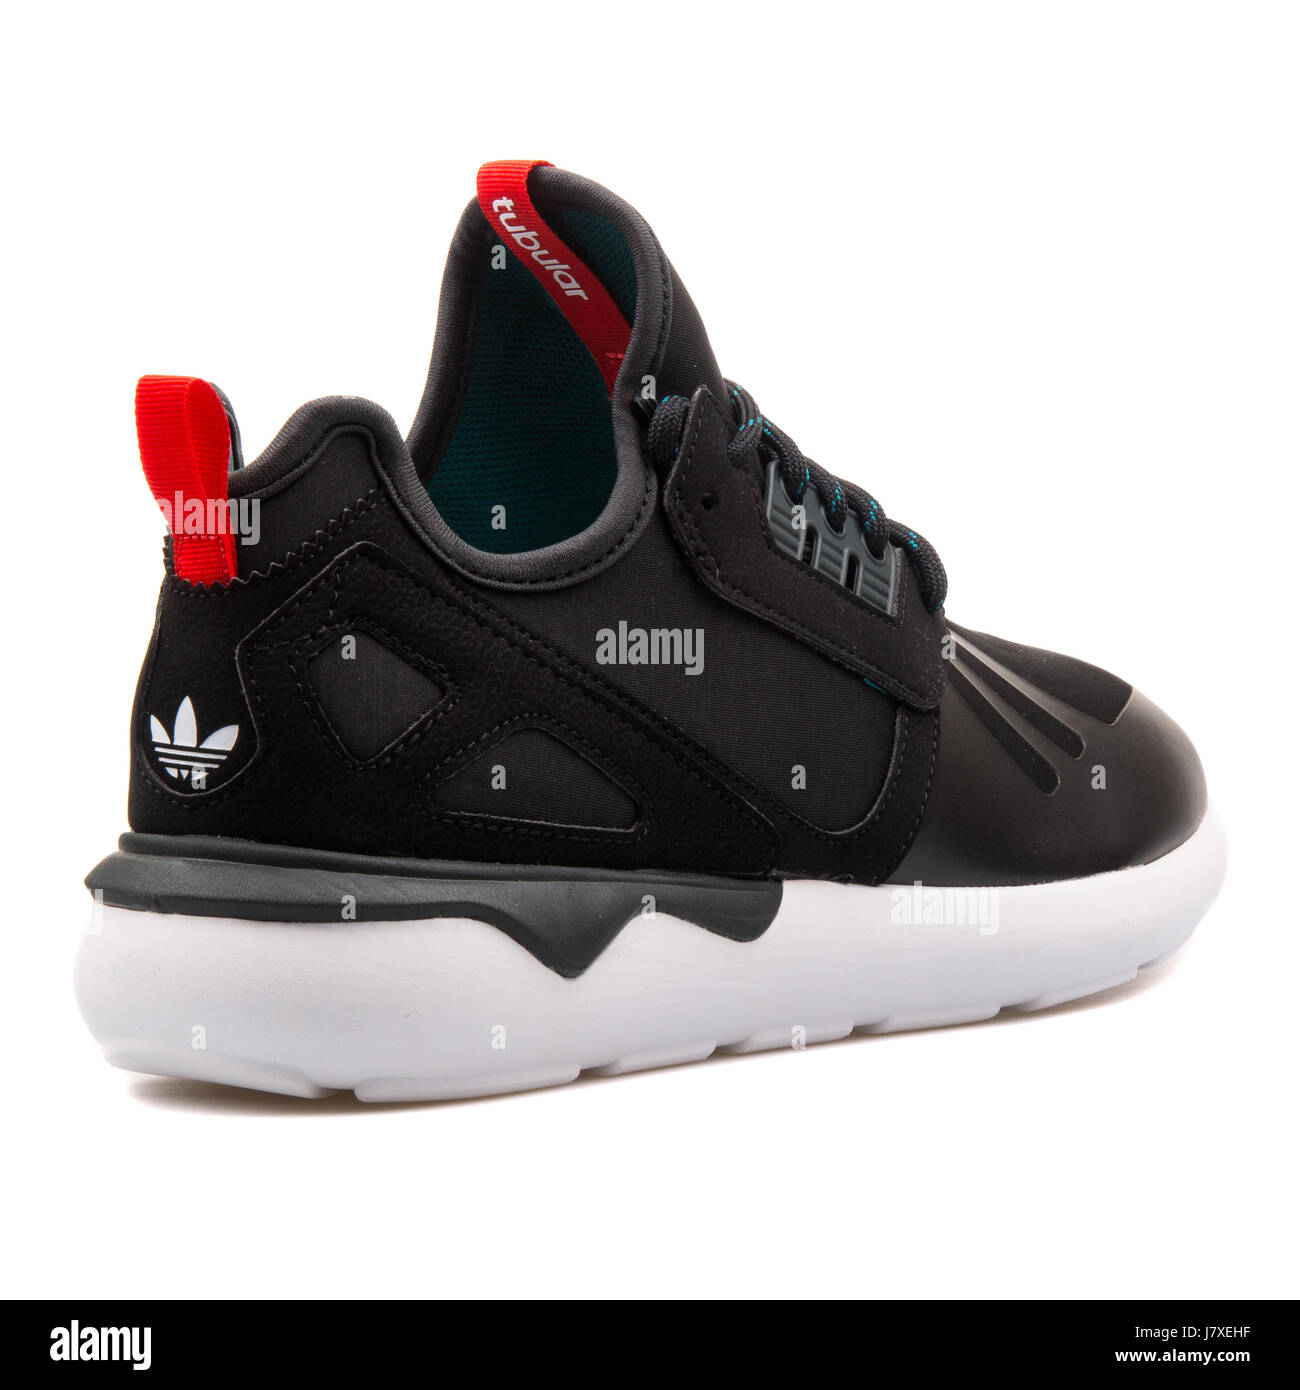 Adidas Tubular Runner Weave Black with Red Running Sneakers - S82651